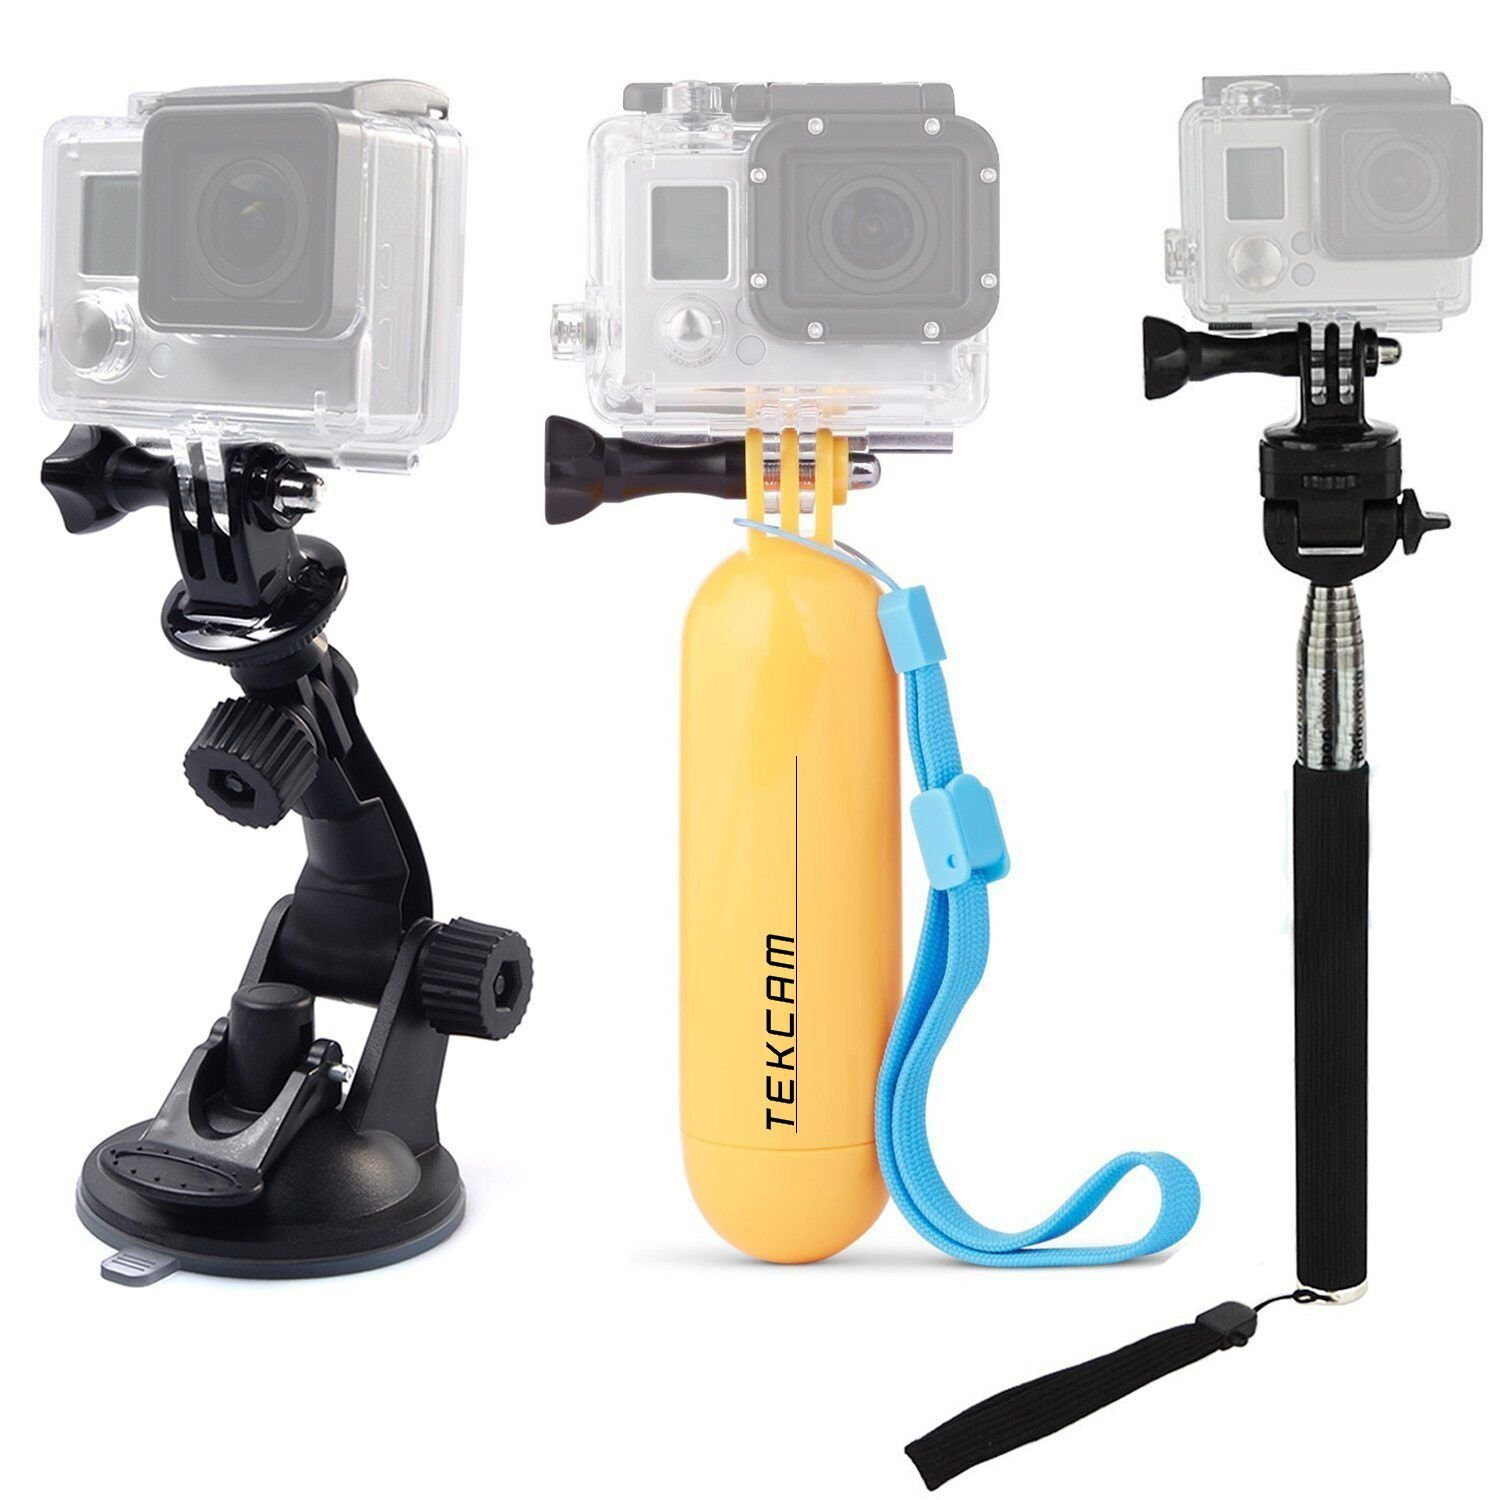 TEKCAM Action Camera Accessories Kits Bundle Compatible for Gopro Hero 6 5/AKASO EK7000/APEMAN/Campark/DBPOWER 1080P Waterproof Sports Action Camera Car Suction Cup Floating Mount and Selfie Stick